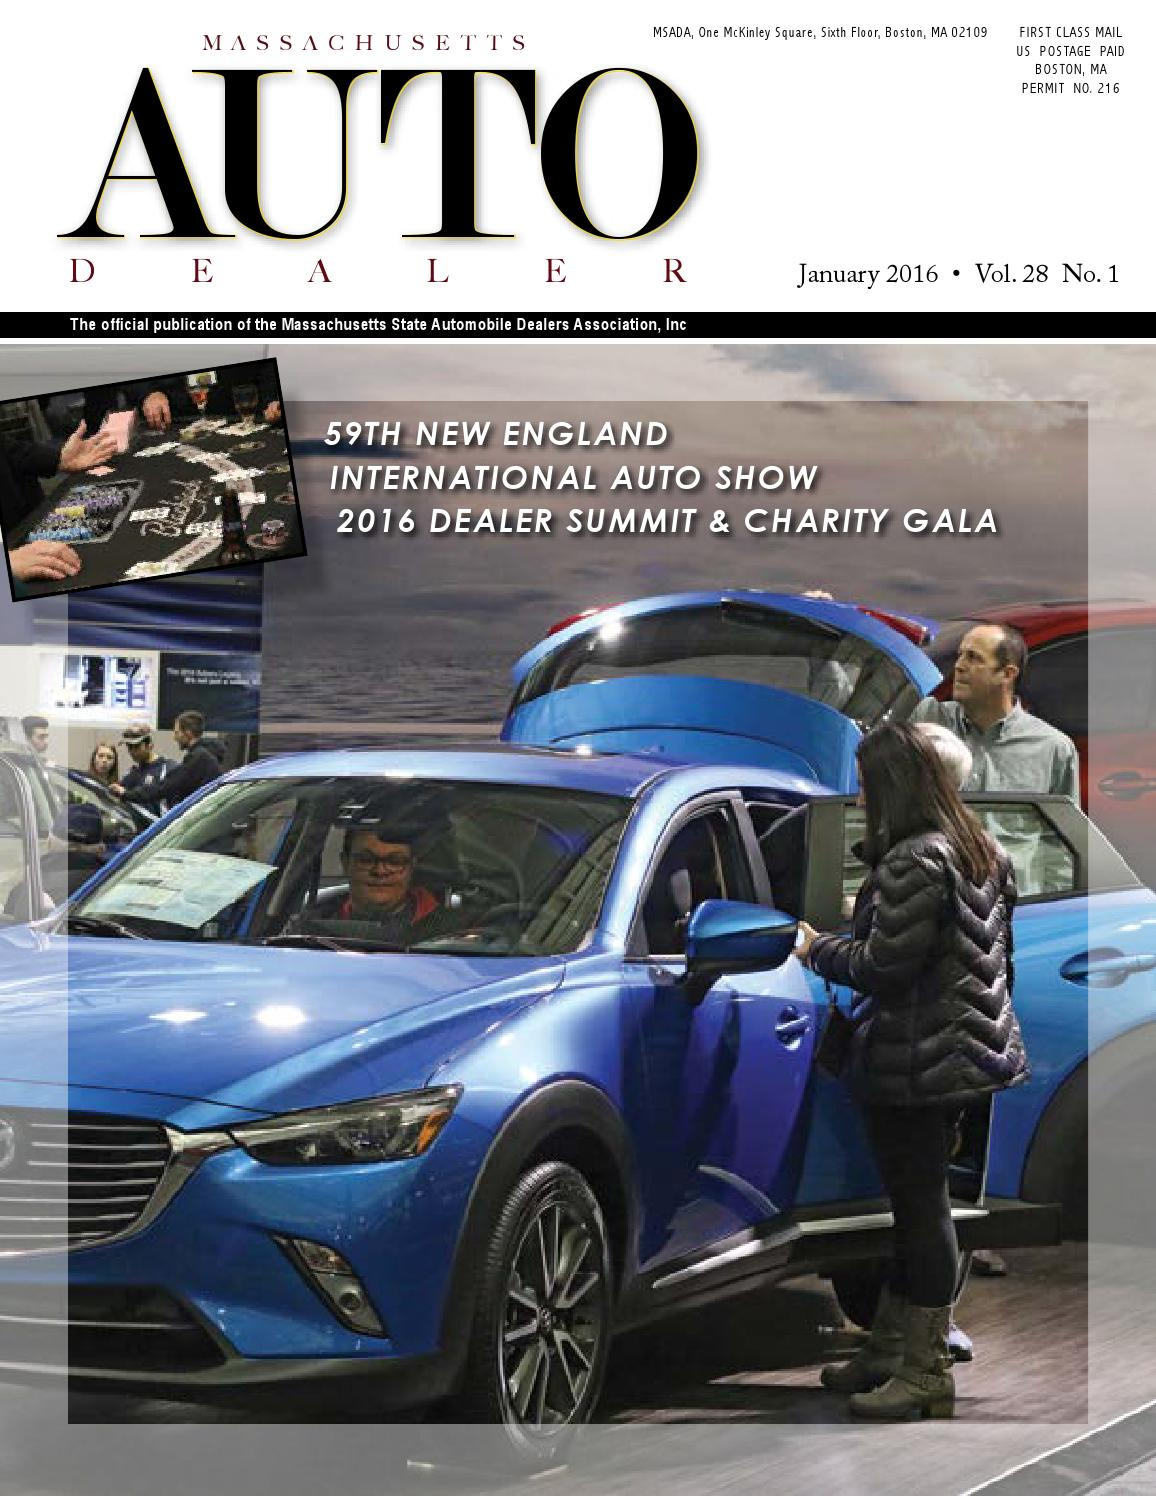 massachusetts auto dealer magazine 2016 by massachusetts massachusetts auto dealer magazine 2016 by massachusetts state automobile dealers association inc issuu